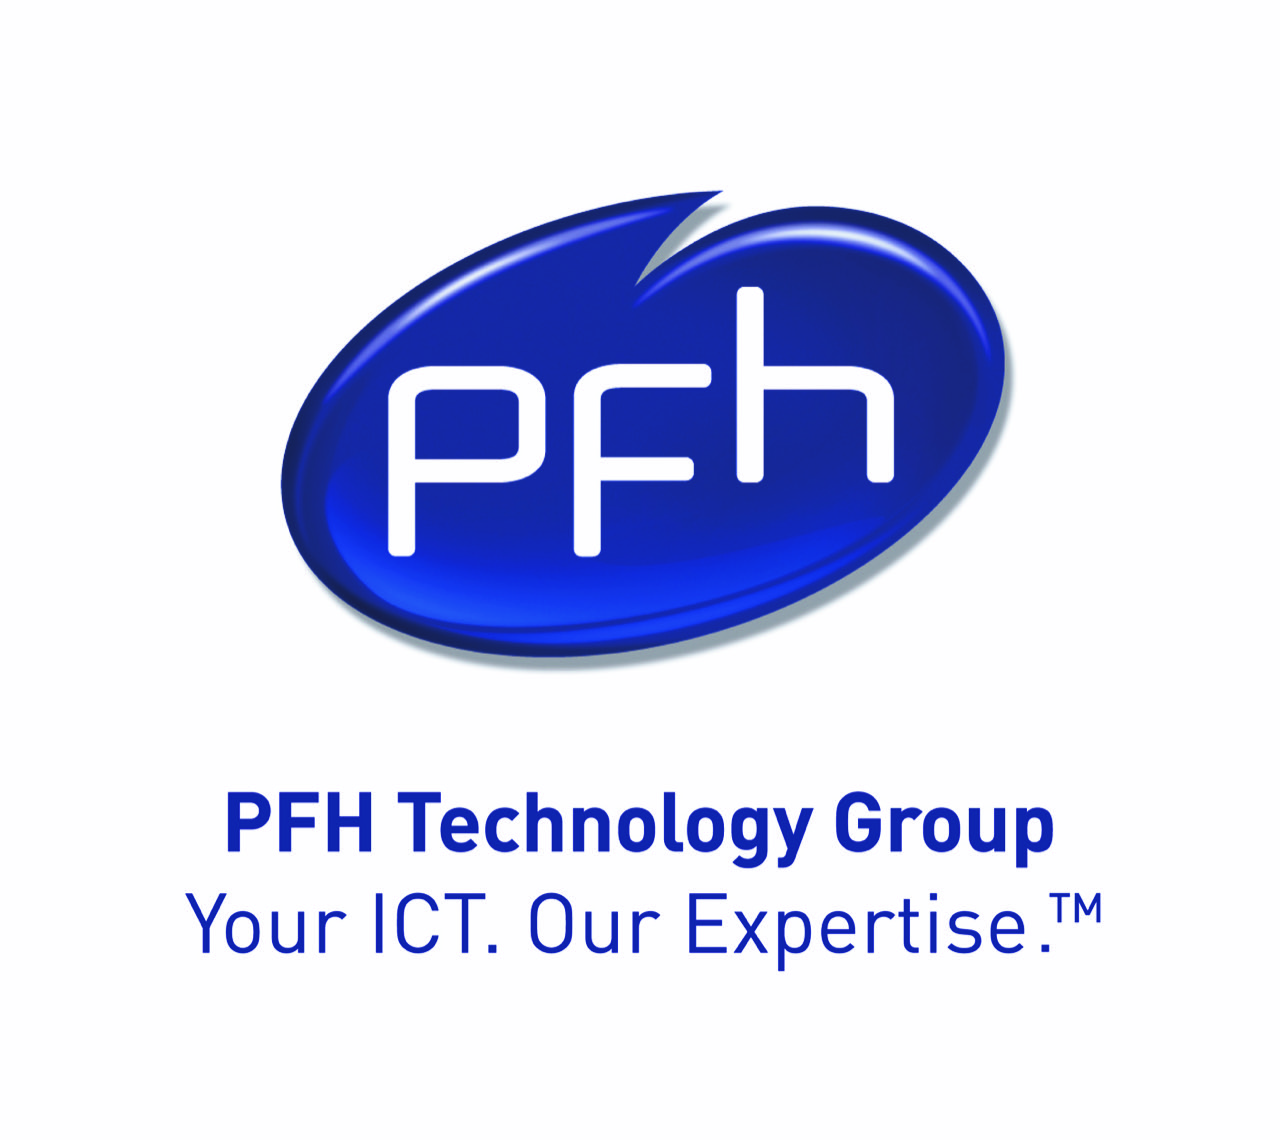 PFH Technology Group ULC